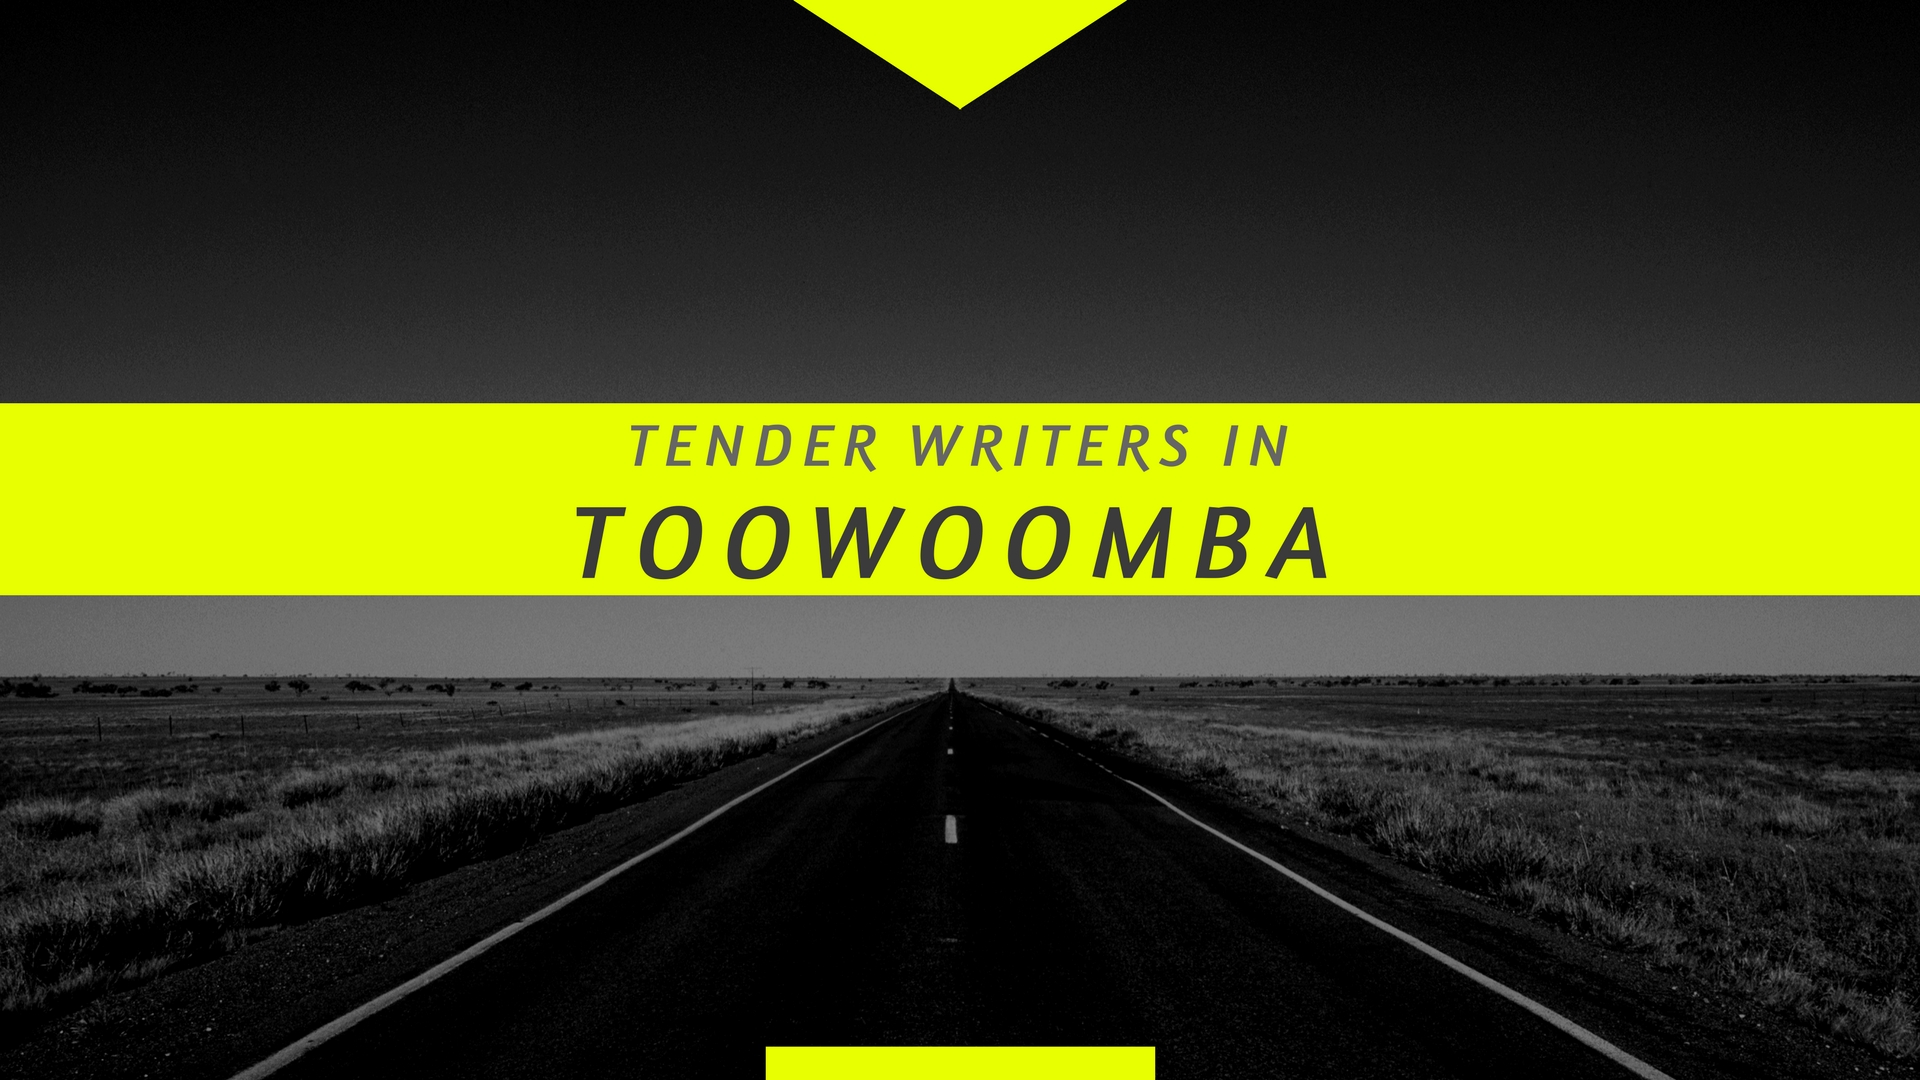 tender writers in toowoomba